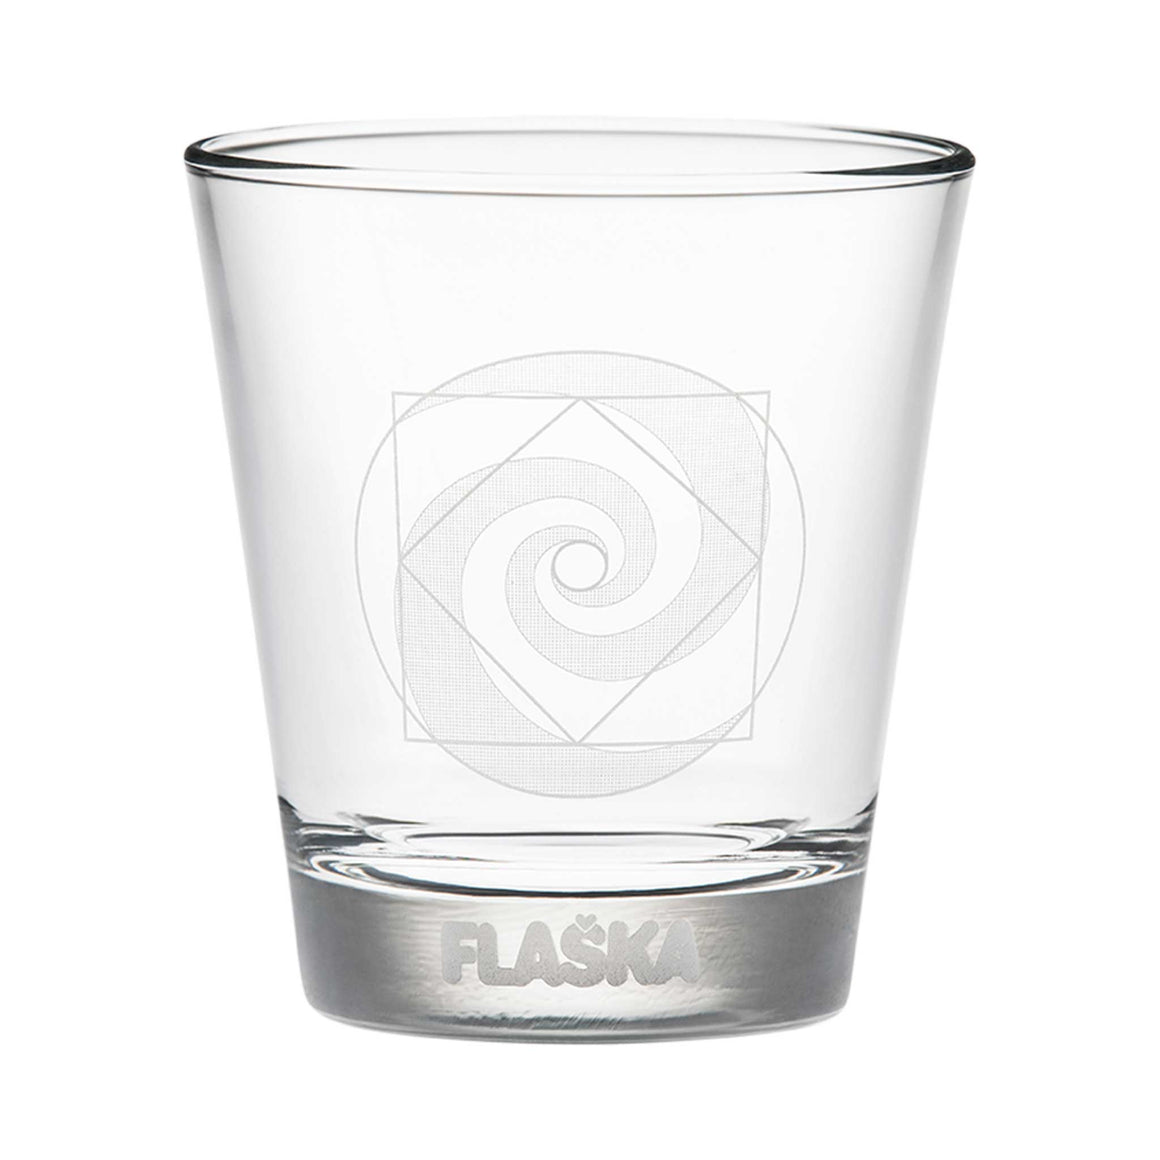 Flaska Sirius Glass Water Drinking Glass